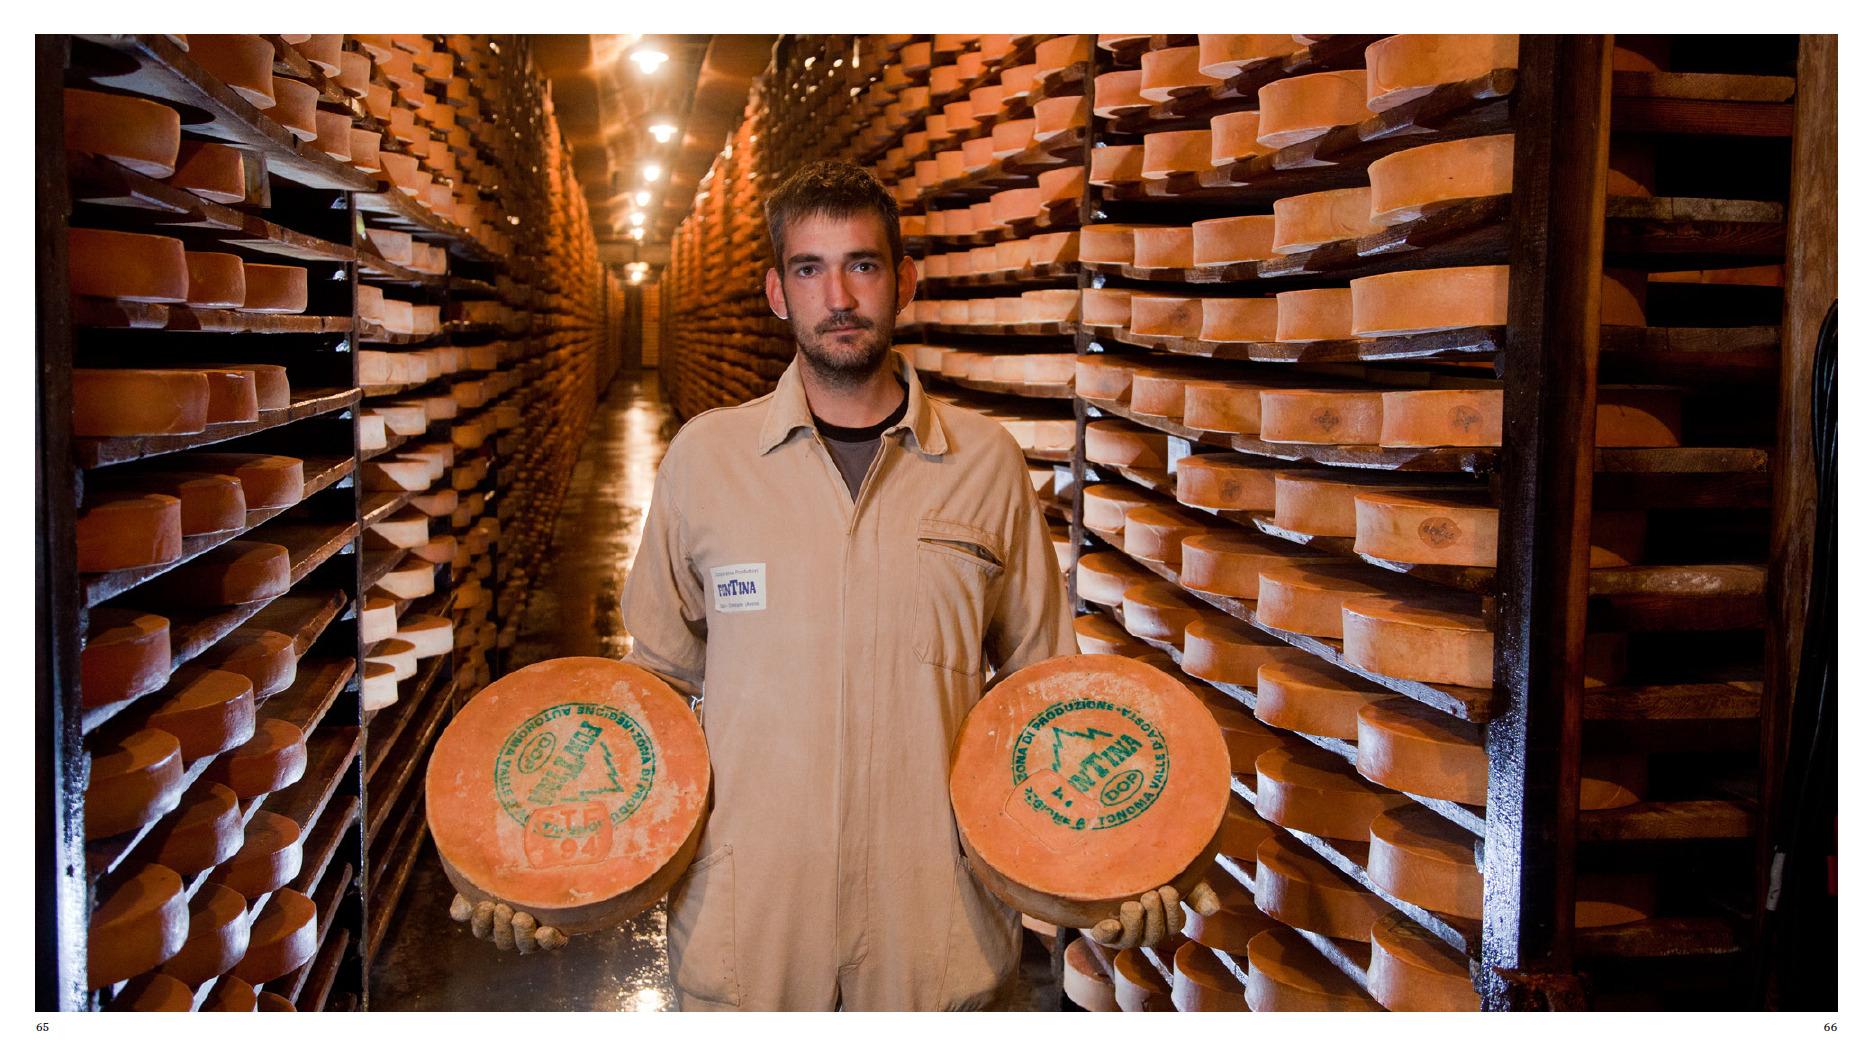 Fontina Cheese storage cellar in Issogne, Aosta Valley, Italy